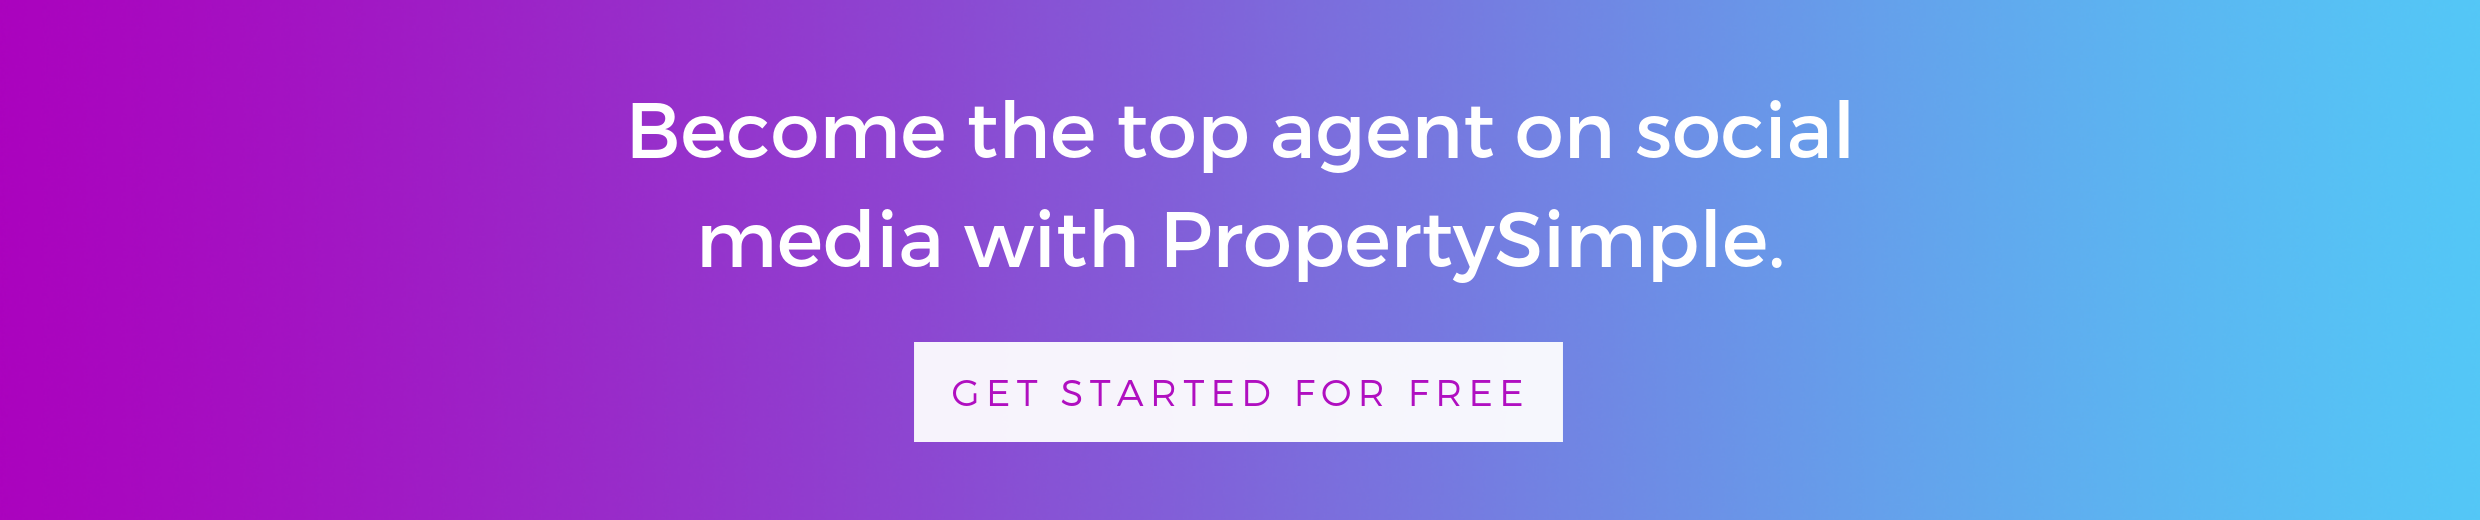 Become the top agent on social media with PropertySimple